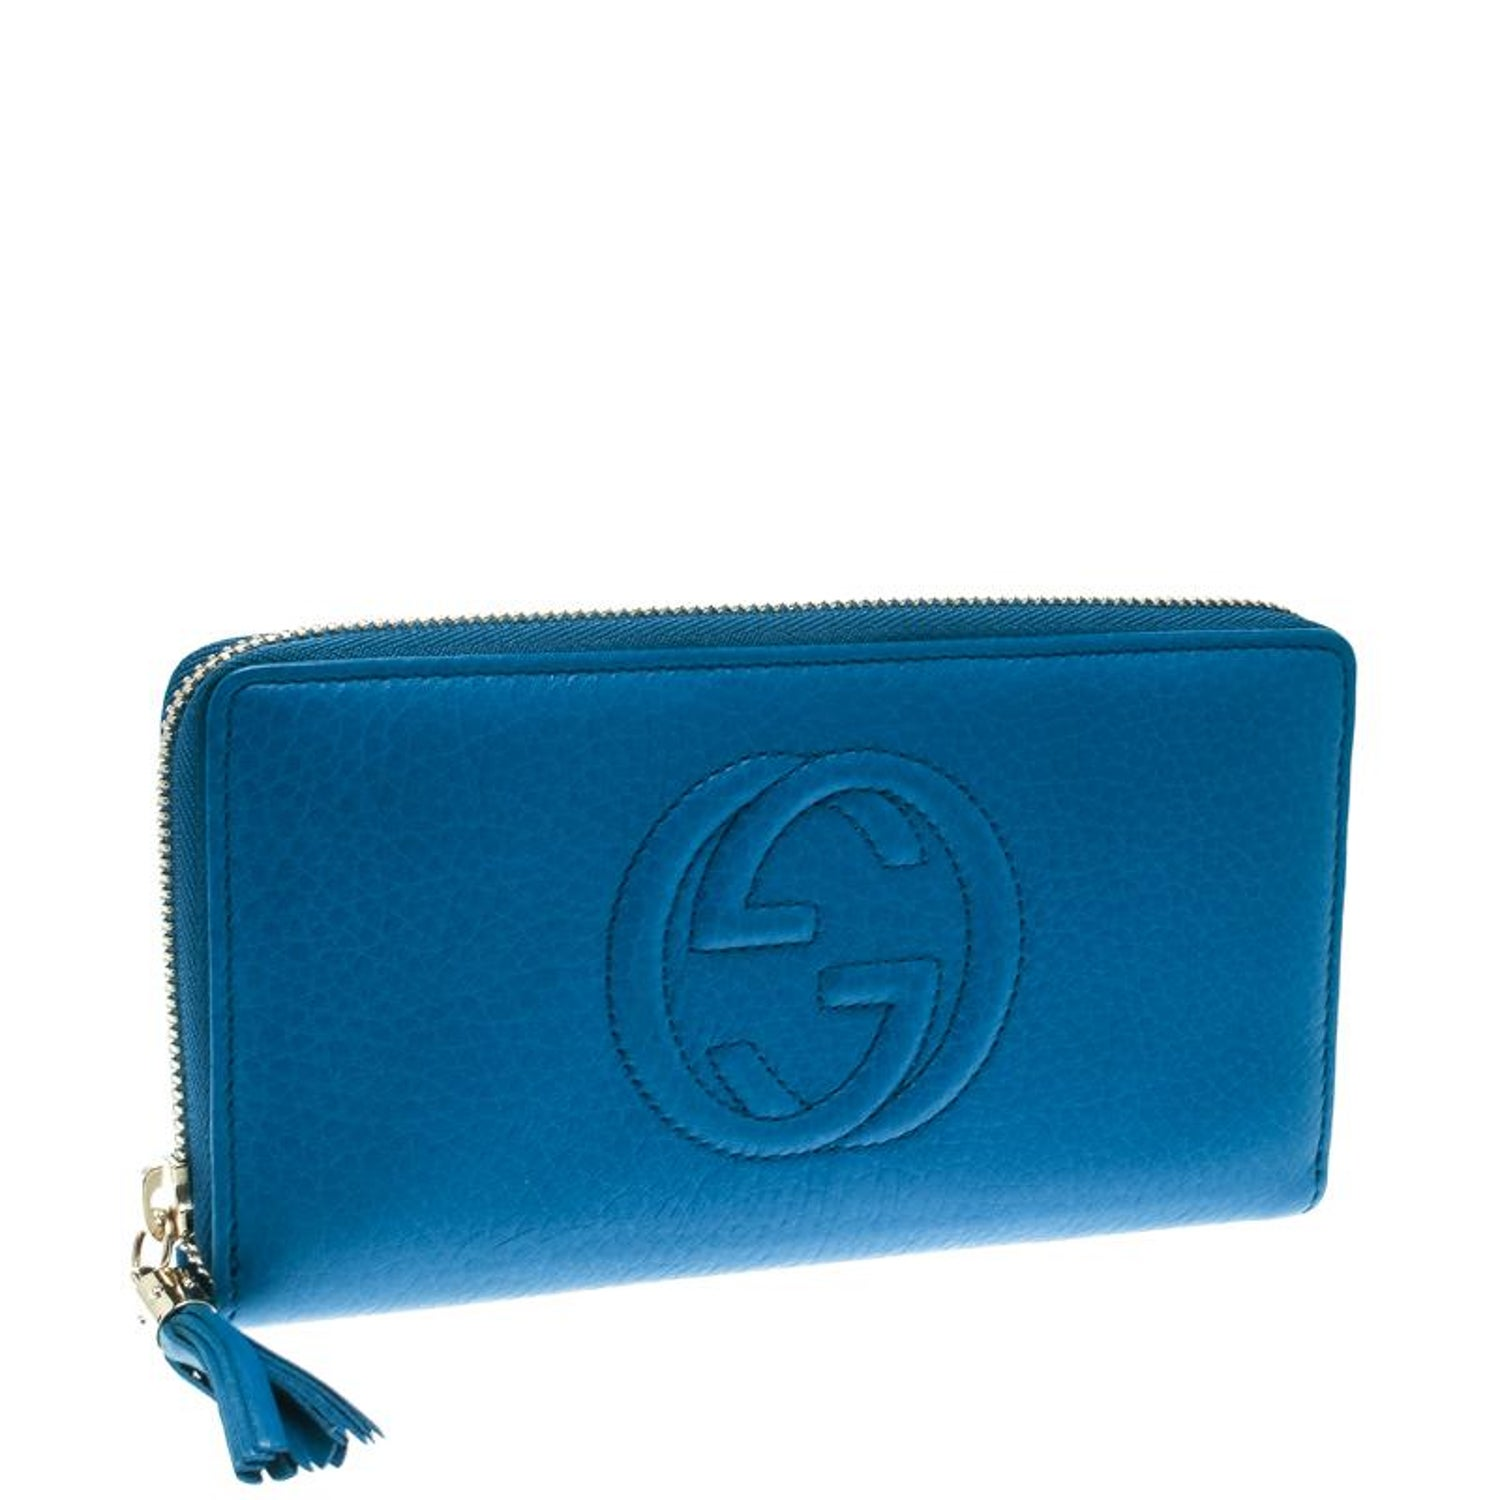 b3da404f5fd2 Gucci Blue Leather Soho Zip Around Wallet For Sale at 1stdibs